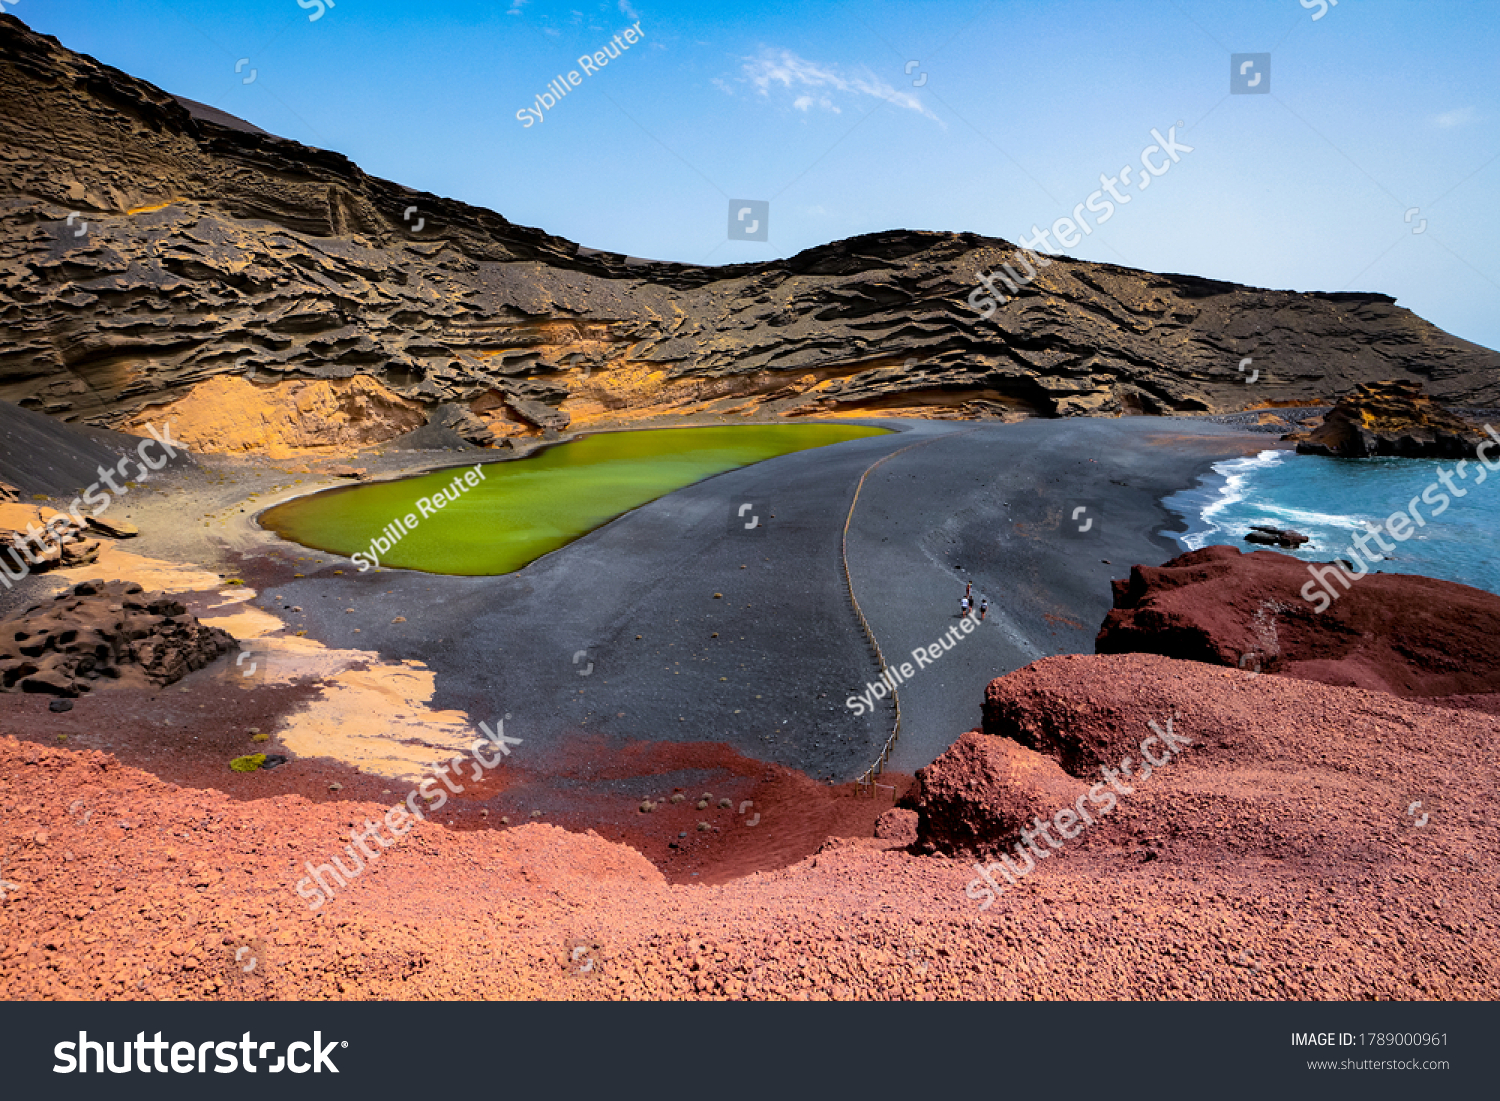 """Lago Verde (""""Green Lake"""") or Charco de Los Clicos in El Golfo, Lanzarote, Canary Islands, Spain. Uniquely colorful landscape with black sand beach, dark volcanic rocks and red earth.  #1789000961"""